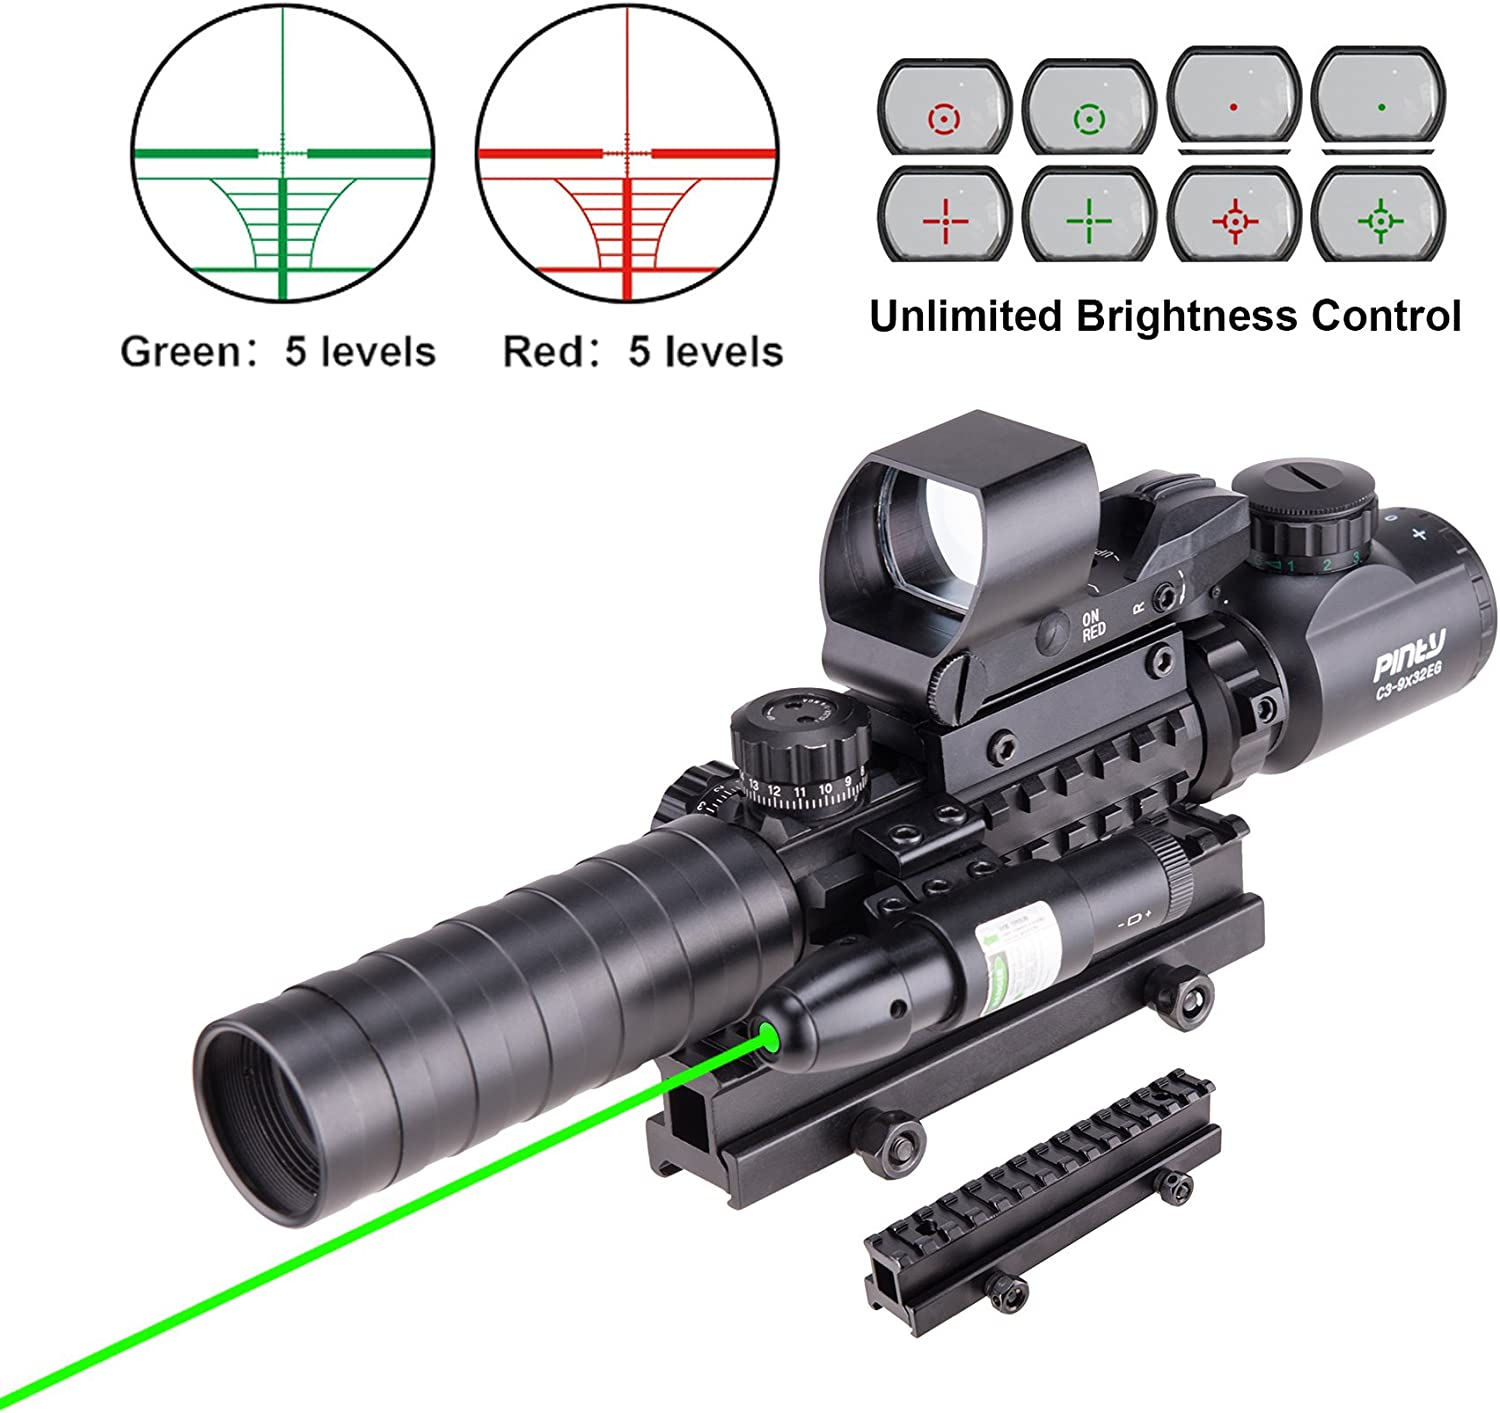 Pinty Rifle Scope 3-9×32 Rangefinder Illuminated Reflex Sight 4 Reticle Green Dot Laser Sight with 14 Slots 1 inch High Riser Mount